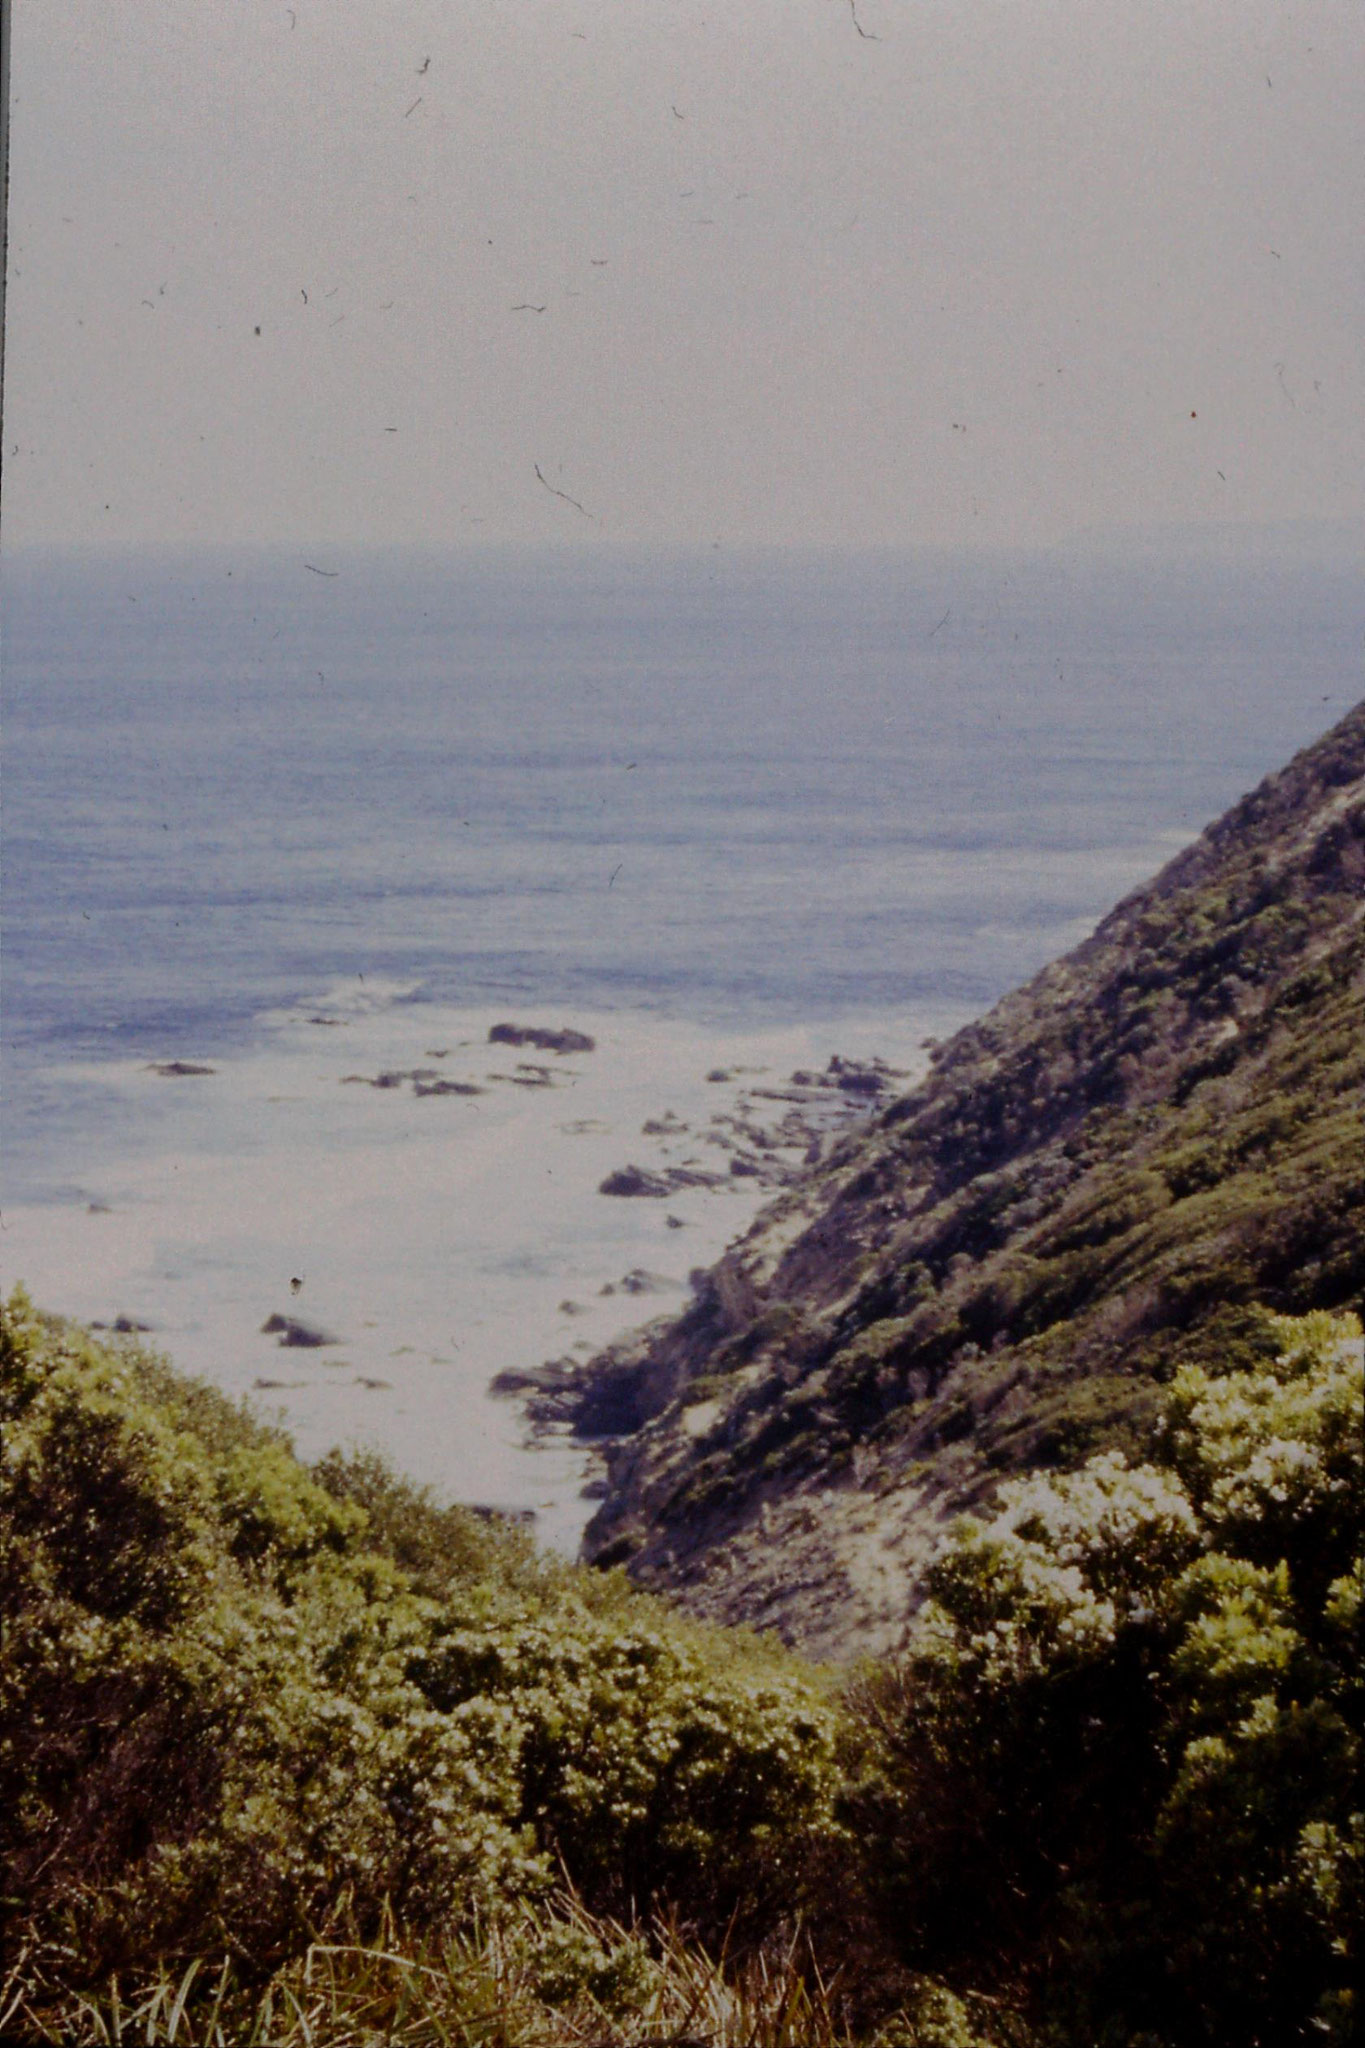 19/9/1990: 23: west from Cape Otway